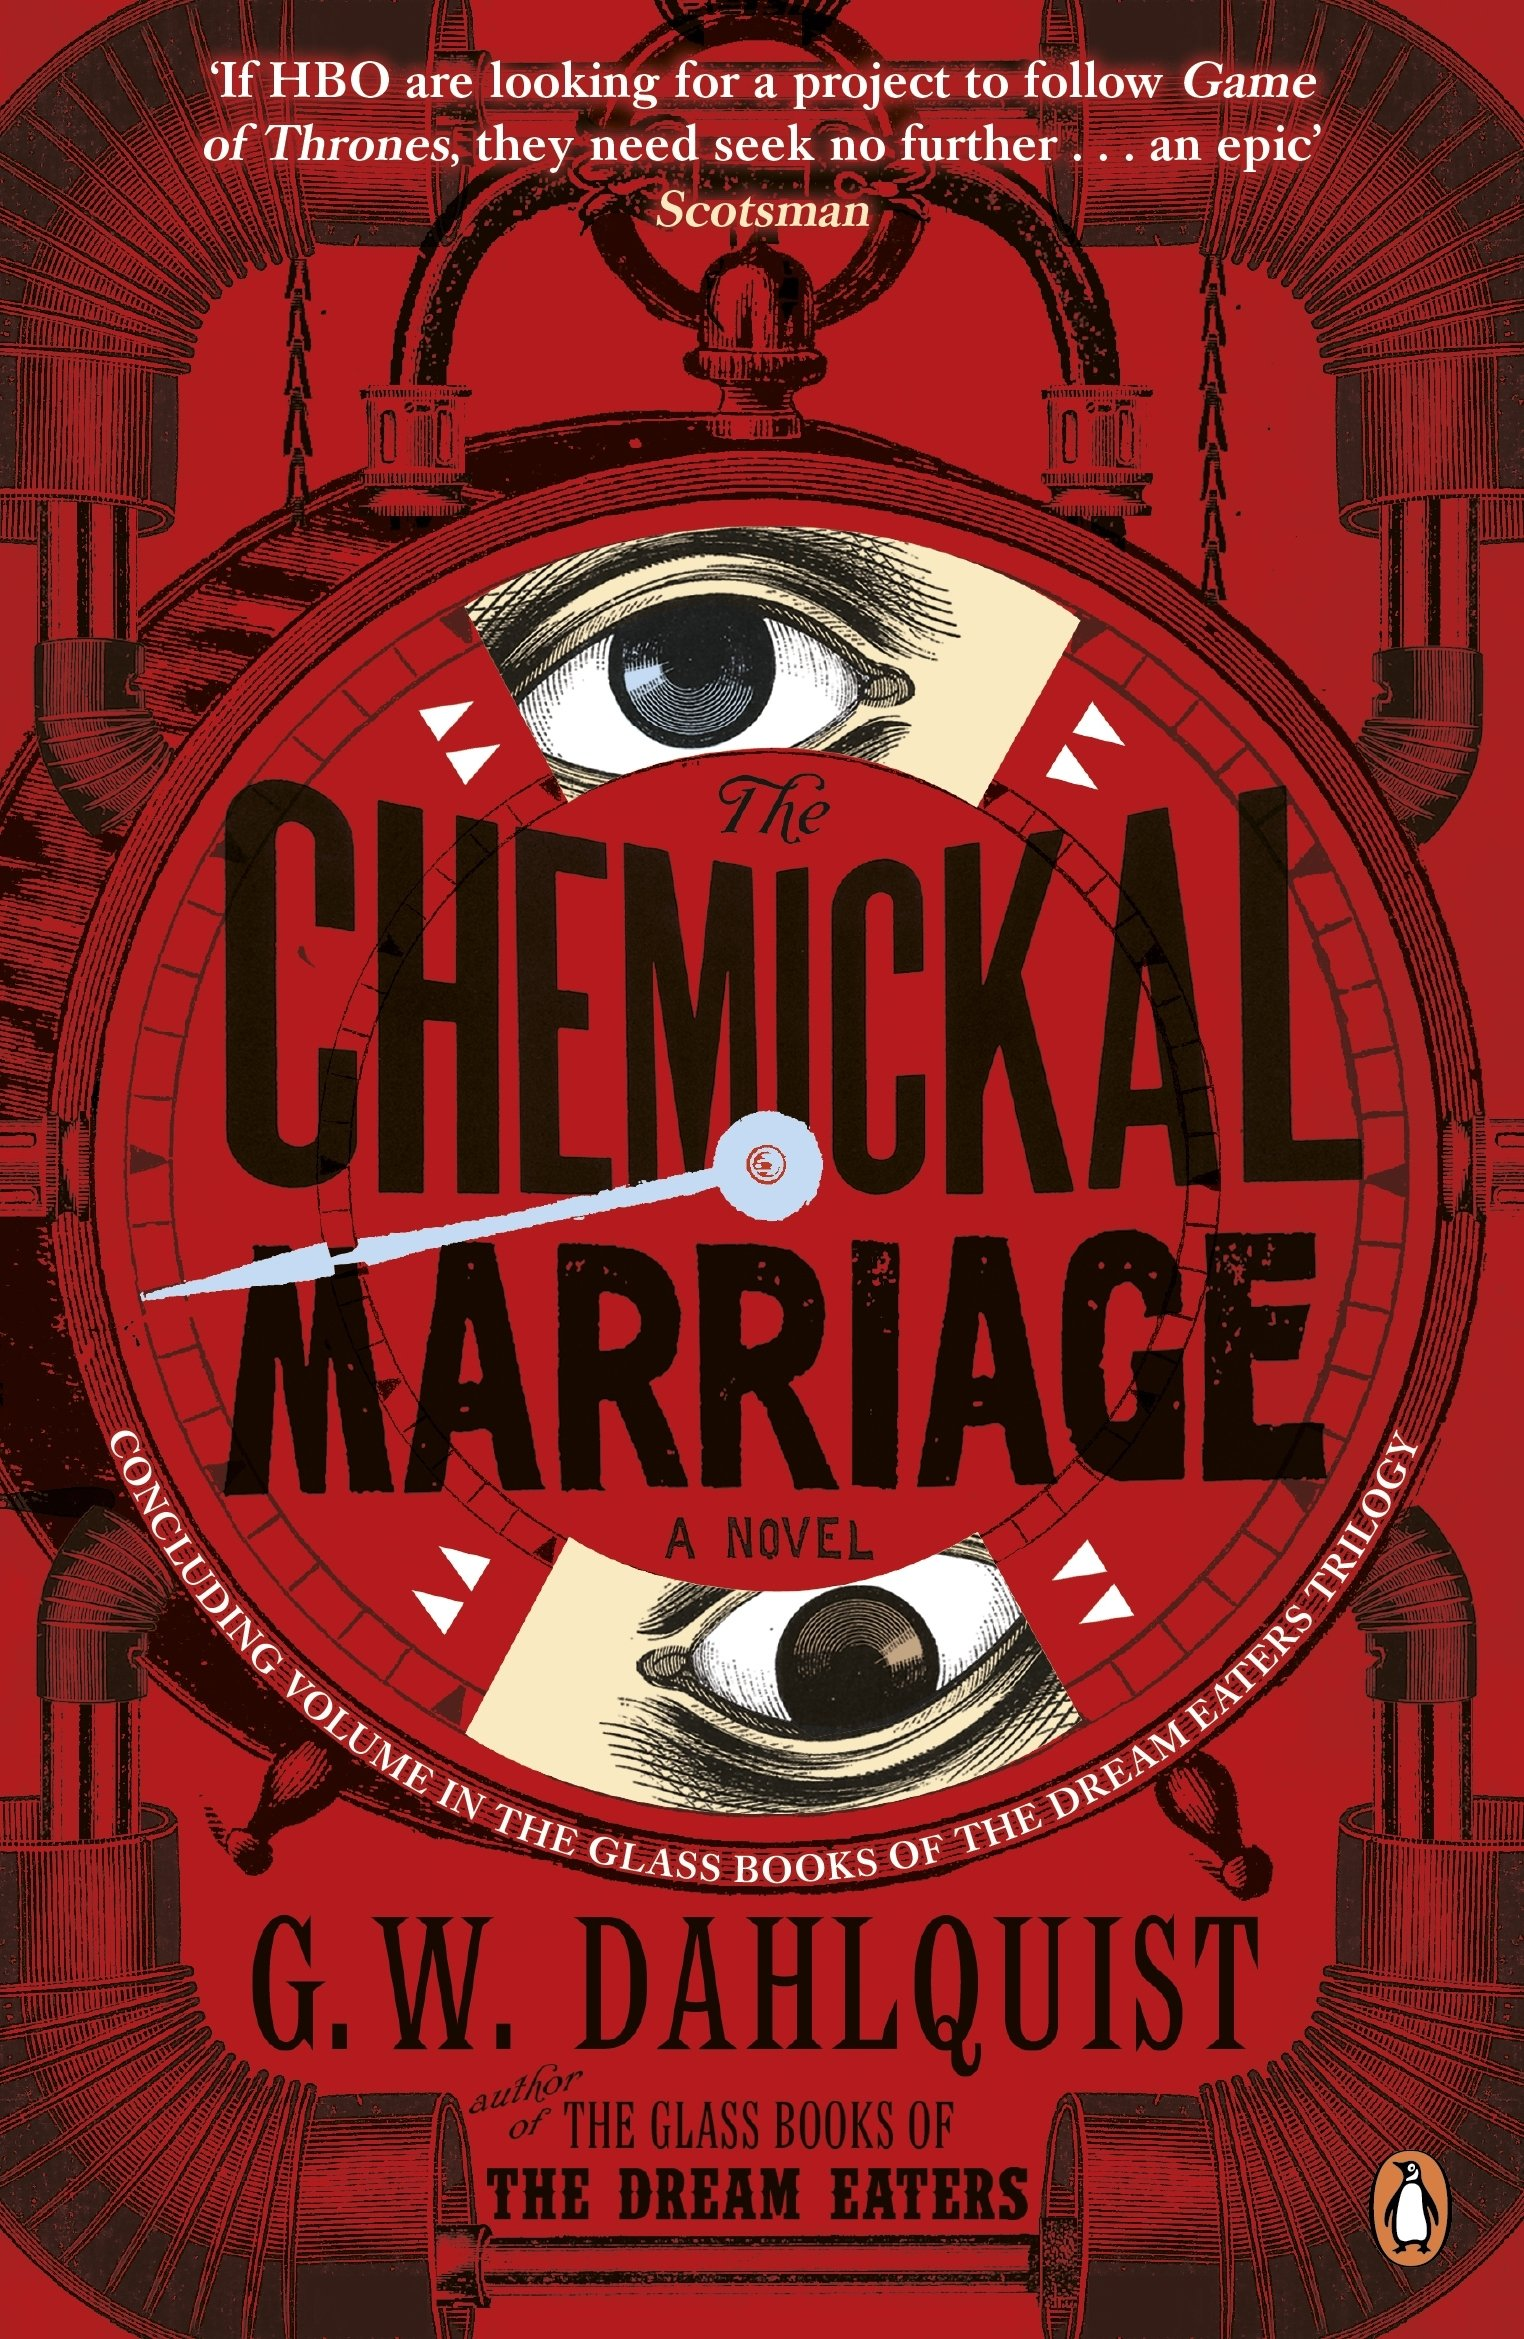 The Chemickal Marriage (The Glass Books Series): Amazon.co.uk: G.W.  Dahlquist: 9780670921669: Books